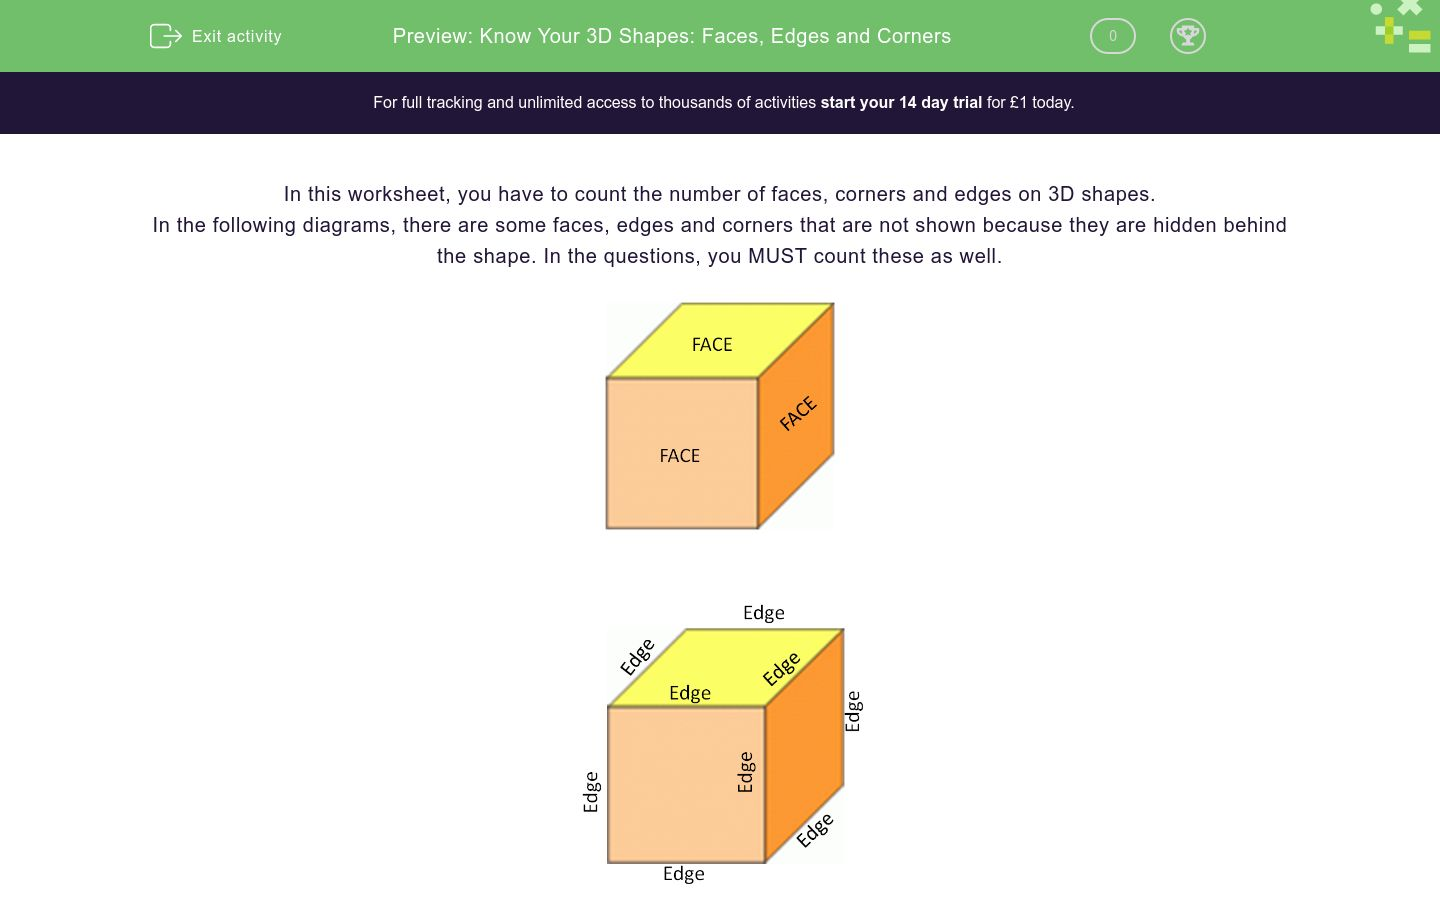 'Know Your 3D Shapes: Faces, Edges and Corners' worksheet